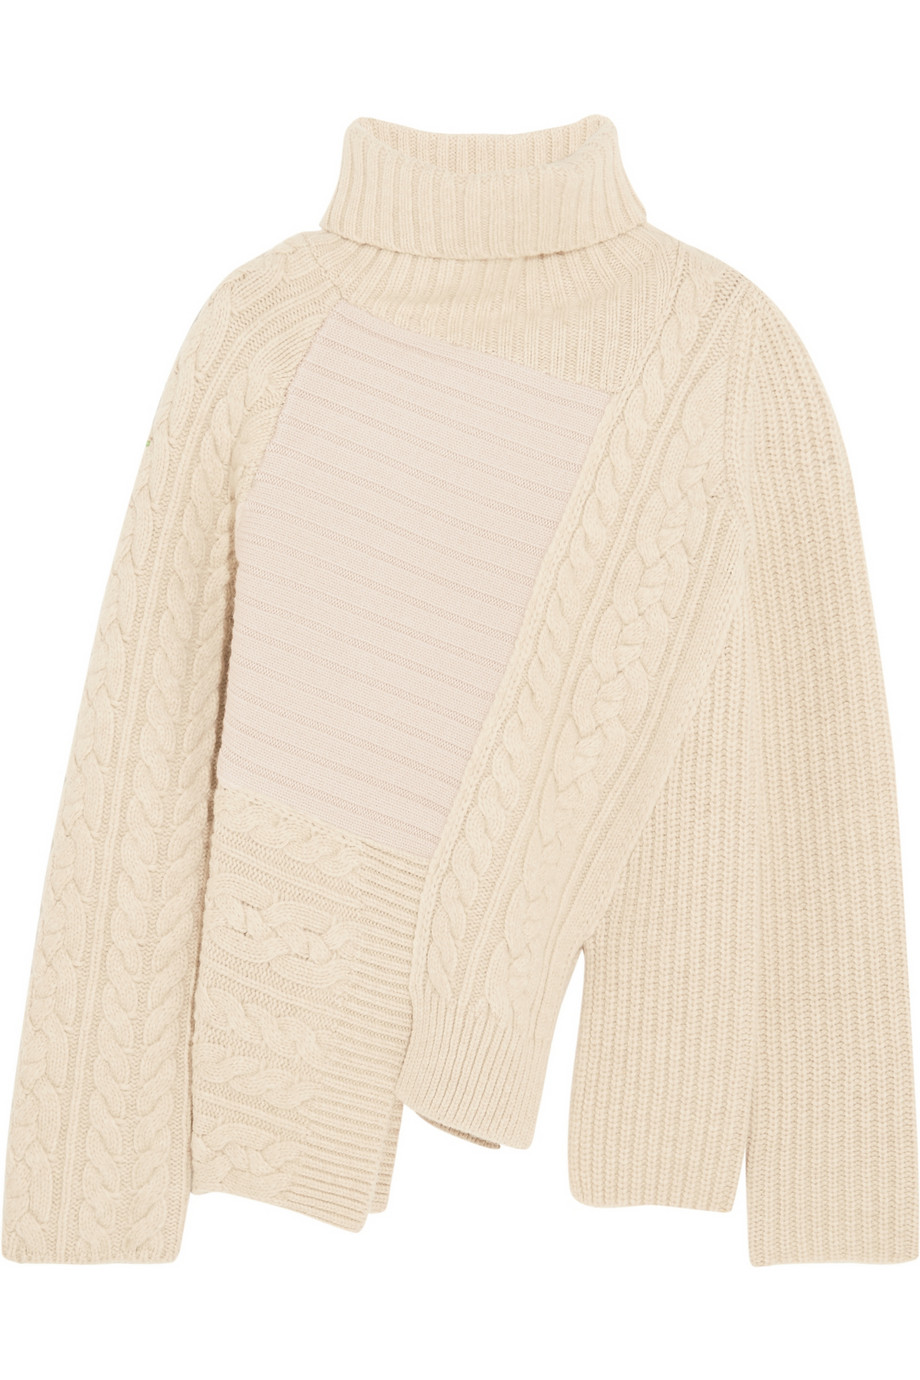 Joseph  sweater - was $625, now $438